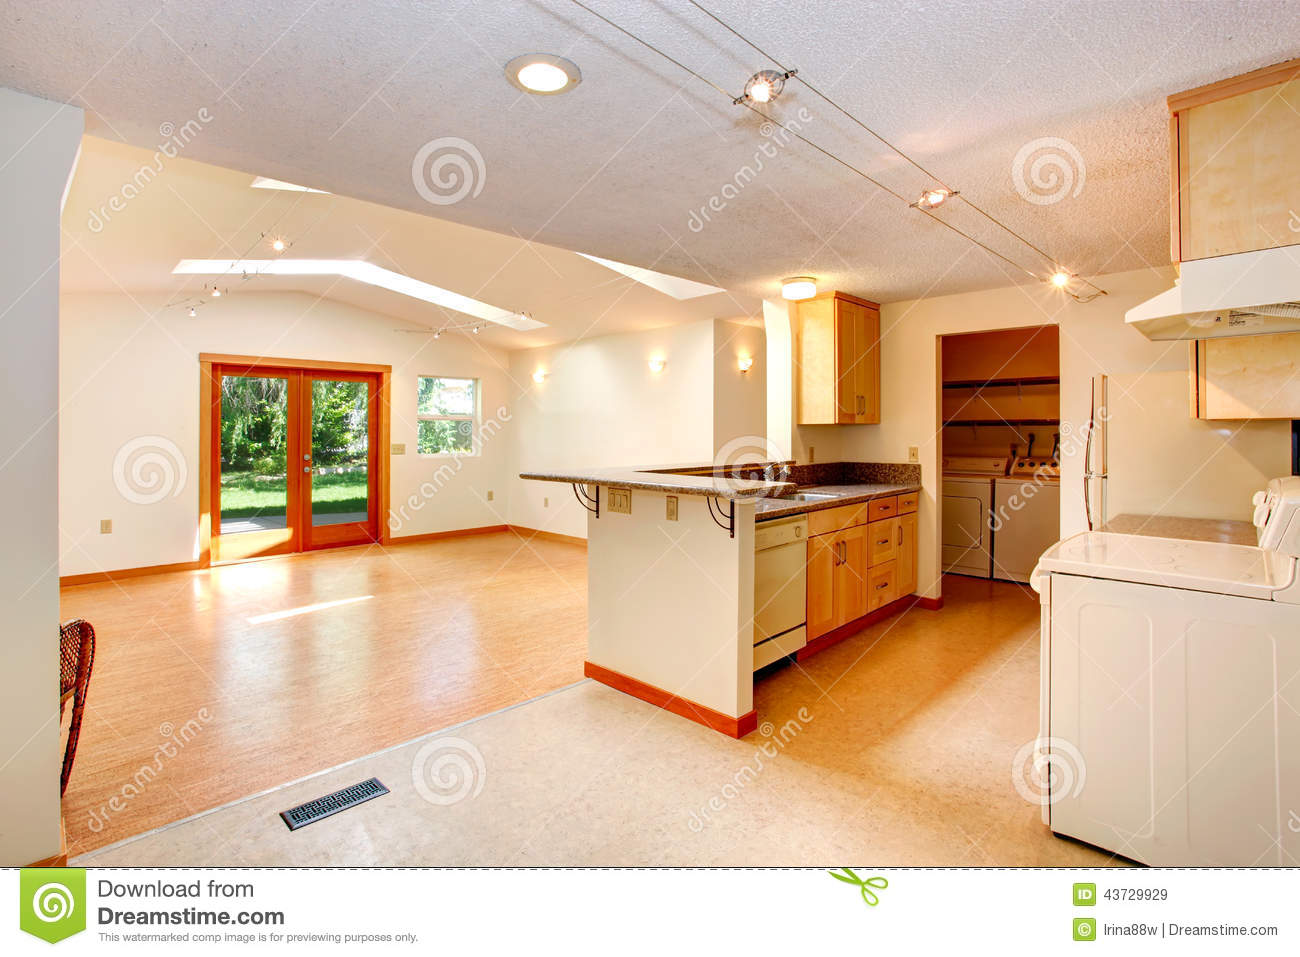 empty house interior open floor plan living room kitch vaulted ceiling skylights view kitchen area 43729929